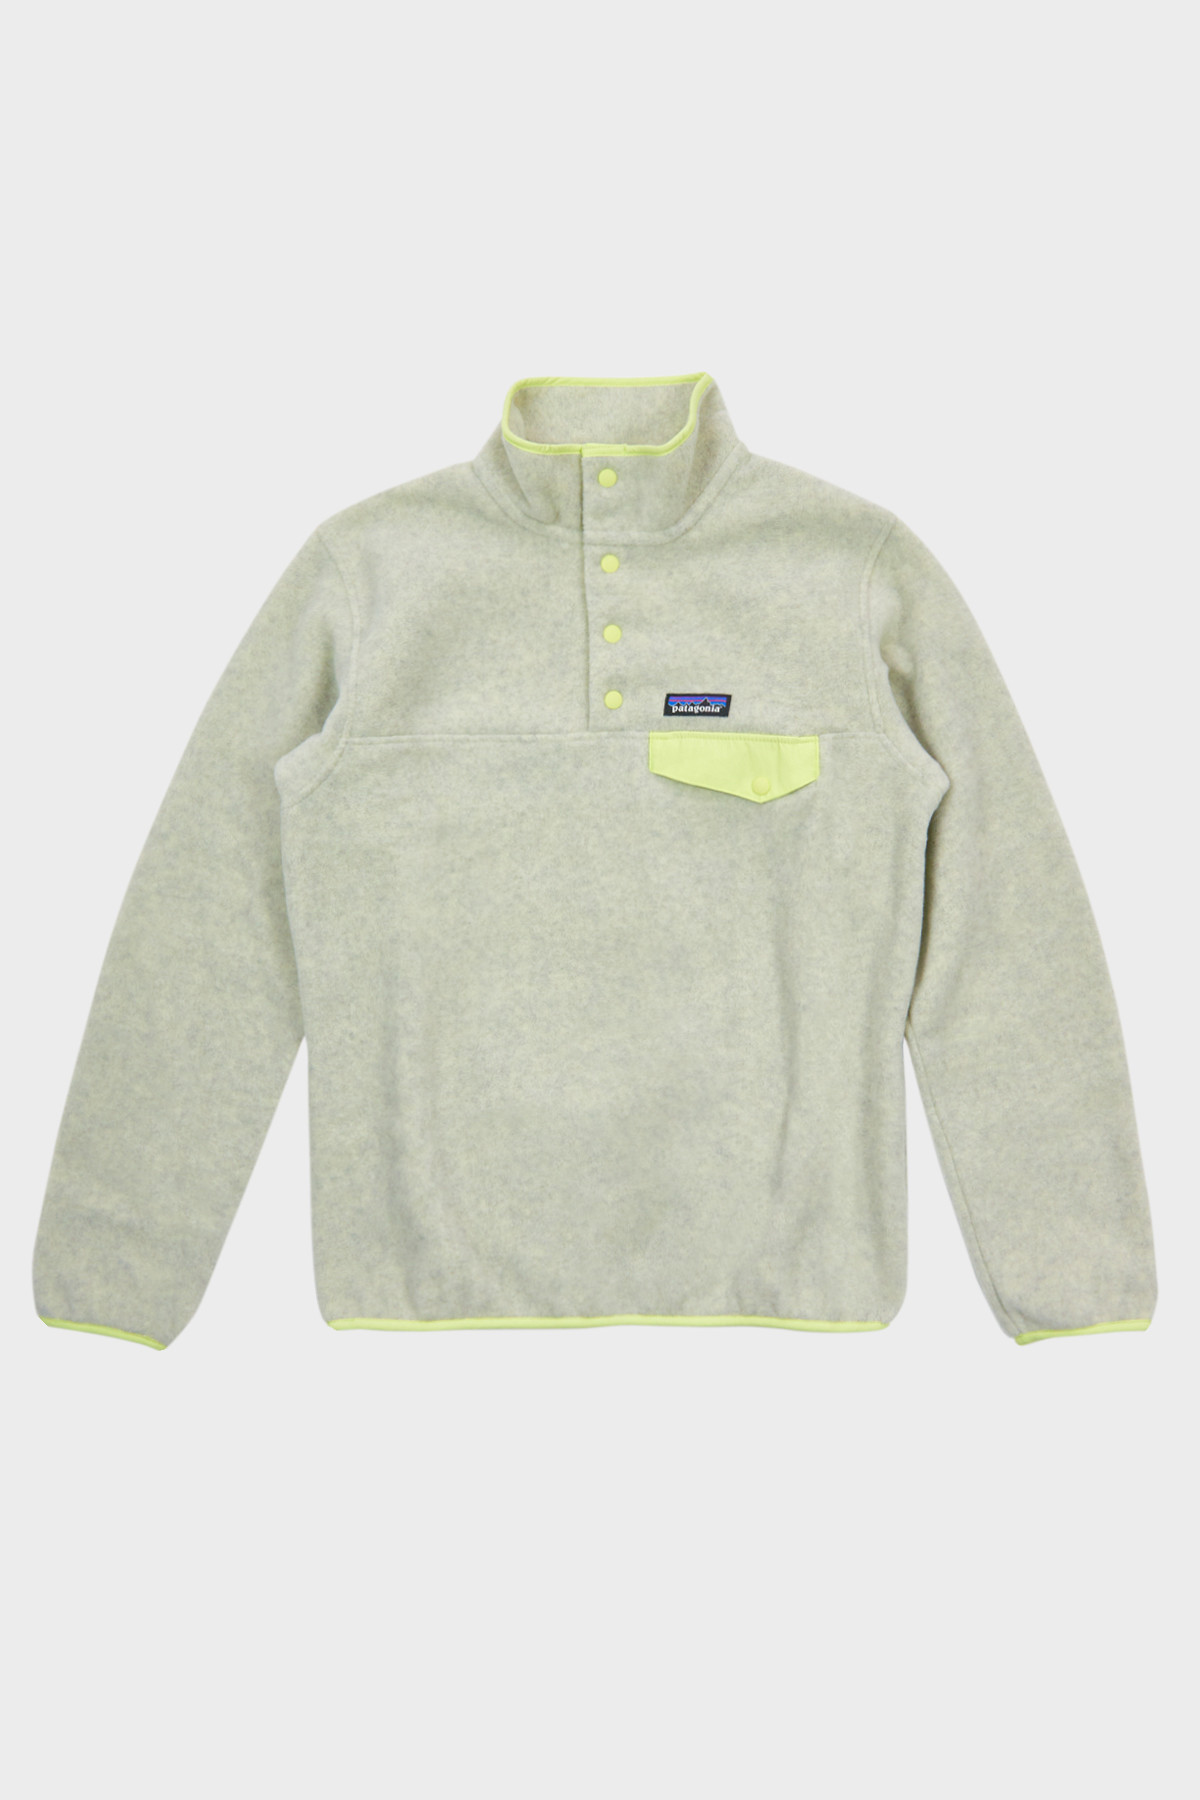 PATAGONIA - W Lightweight Synch Snap-T - OATMEAL JELLYFISH YELLOW